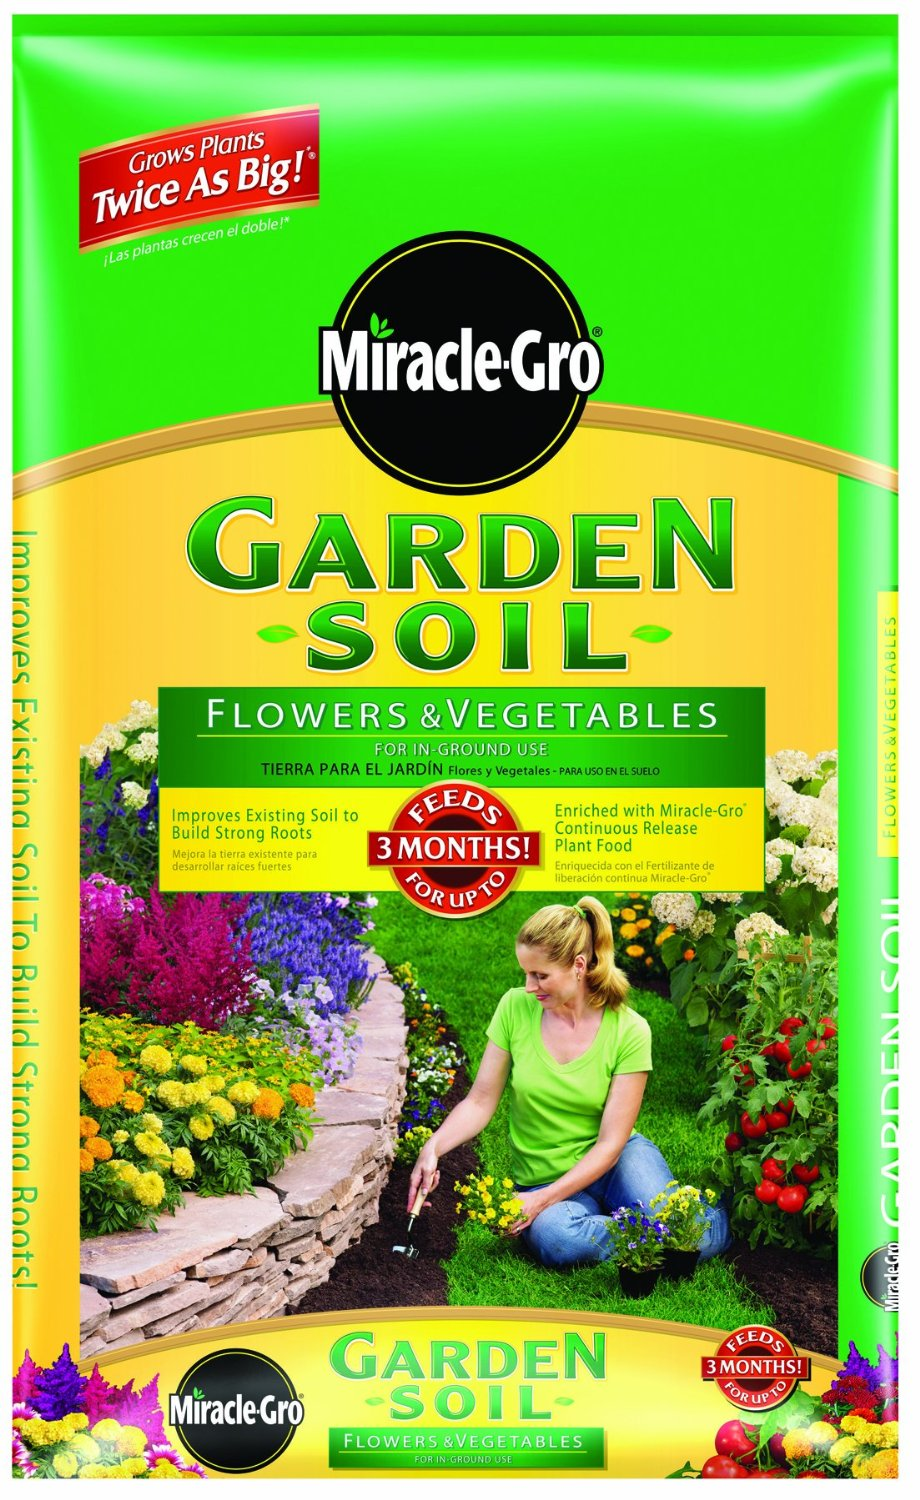 Miracle-Gro 73452300 Garden Soil for Flowers and Vegetables Mix Bag, 2- Cubic-Feet (Older Model)